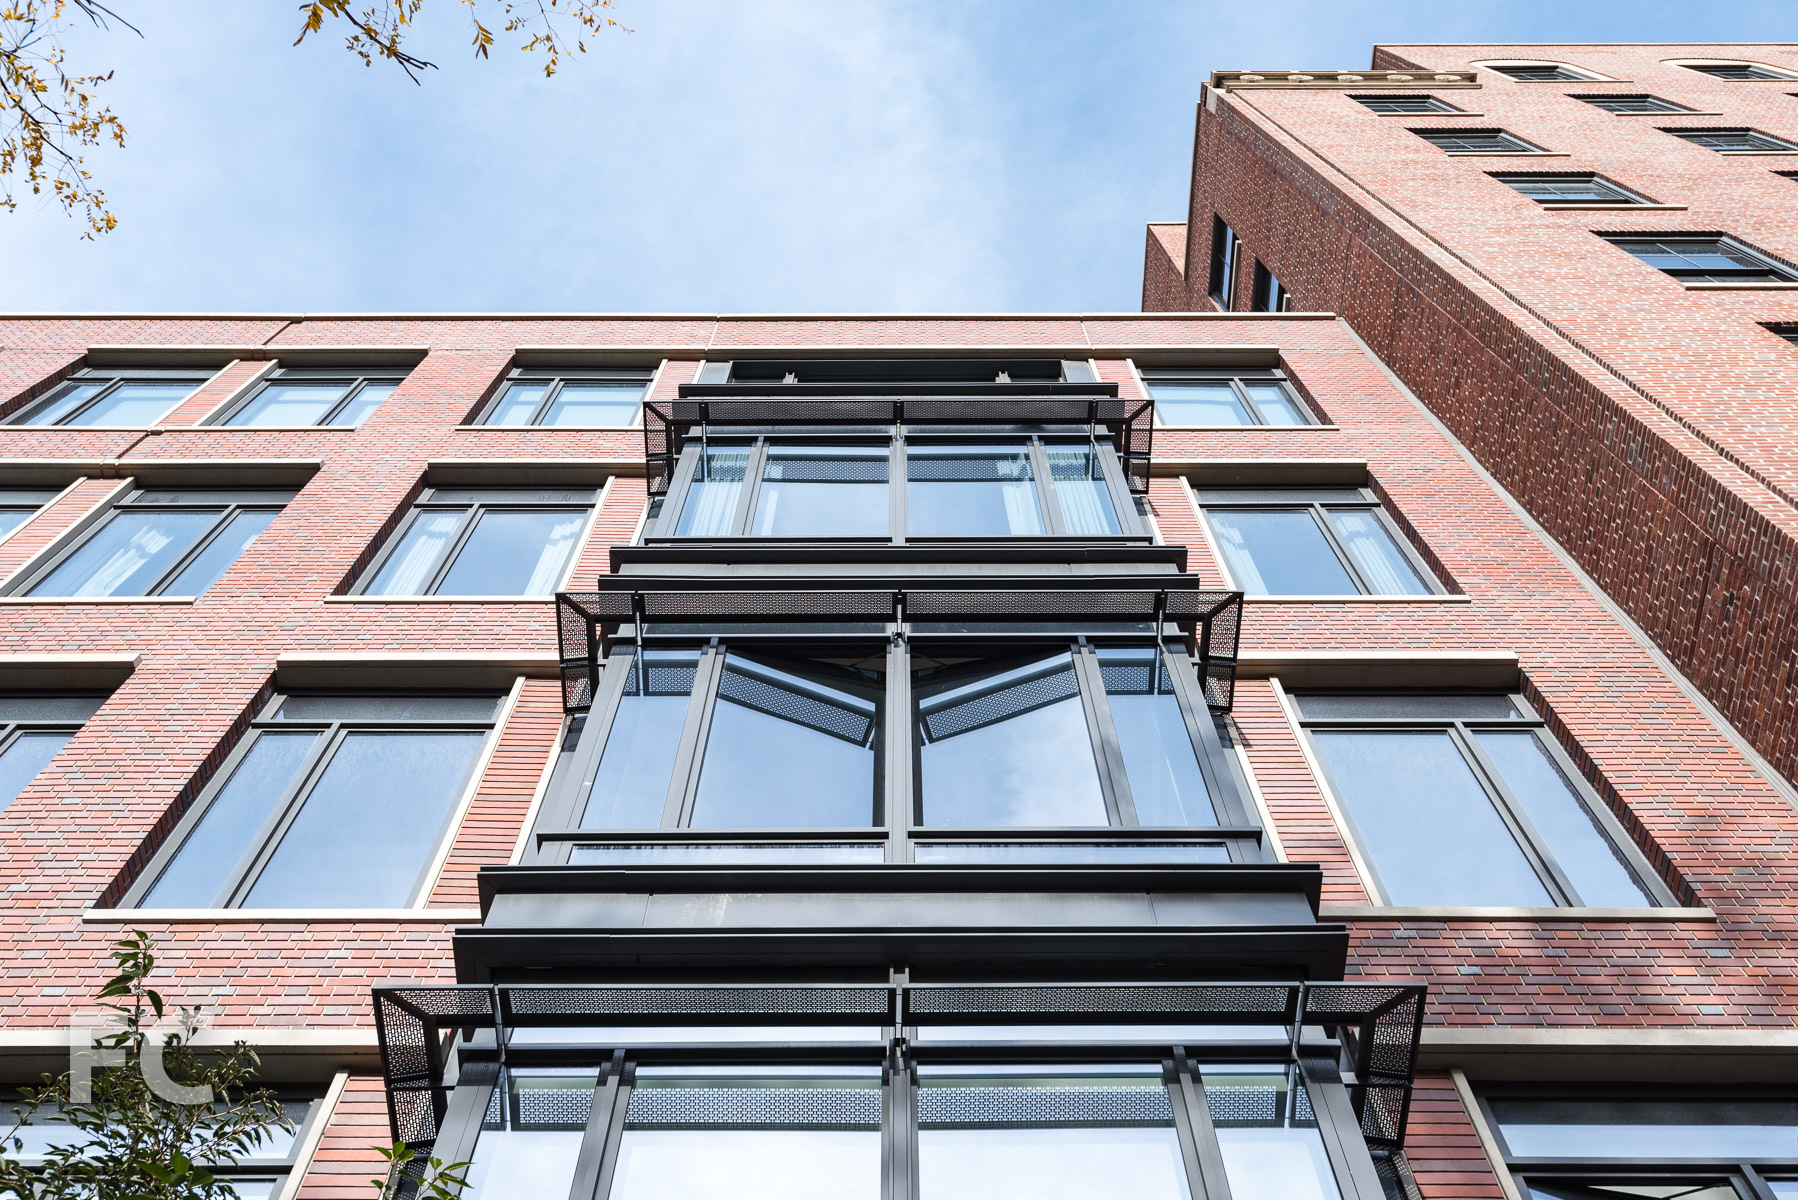 Looking up at the south façade of 155 West 11th Street.